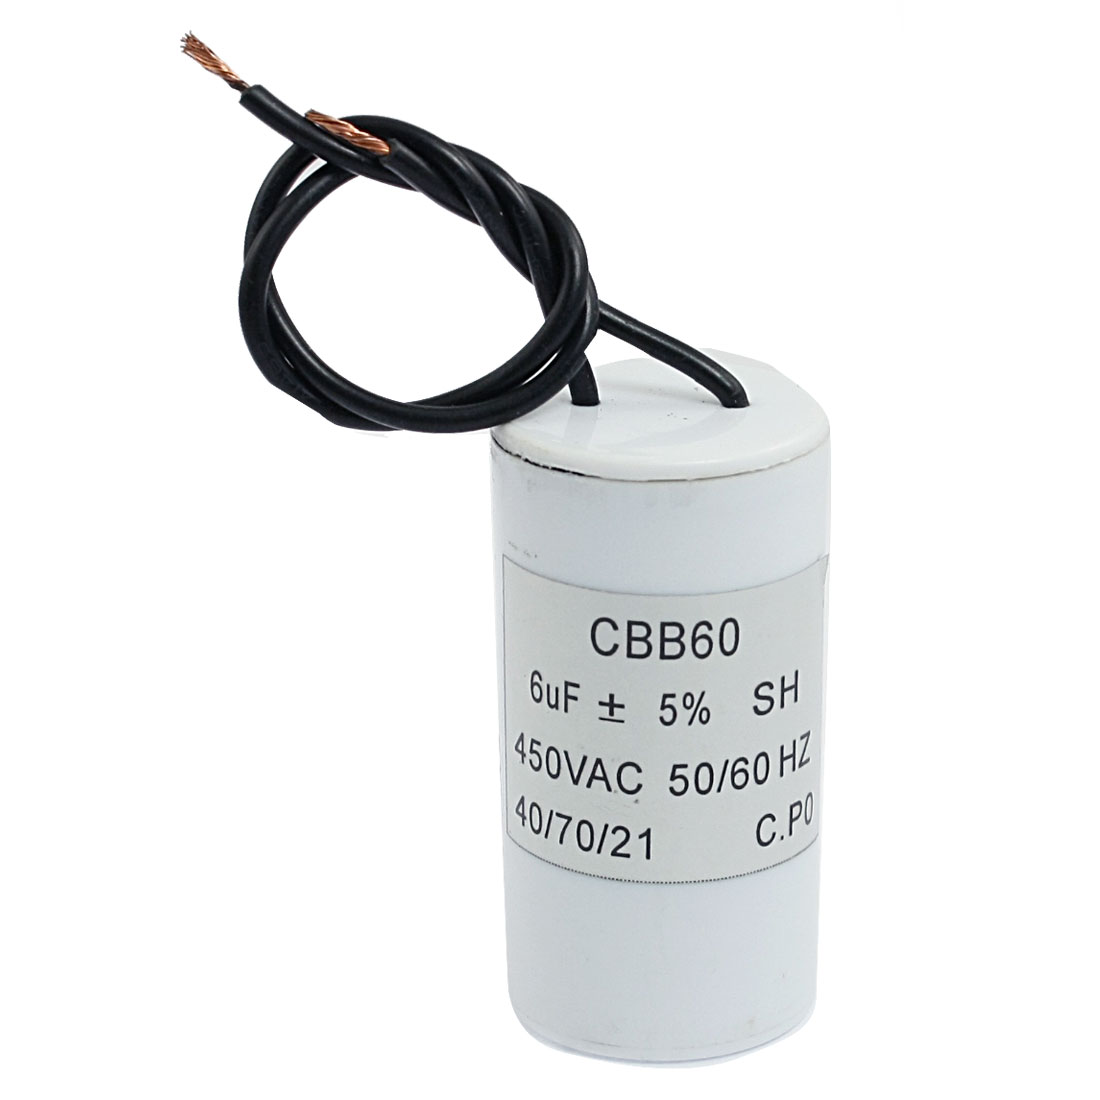 Washing Machine Polypropylene Film Motor Capacitor 450VAC 6uF CBB60 SH